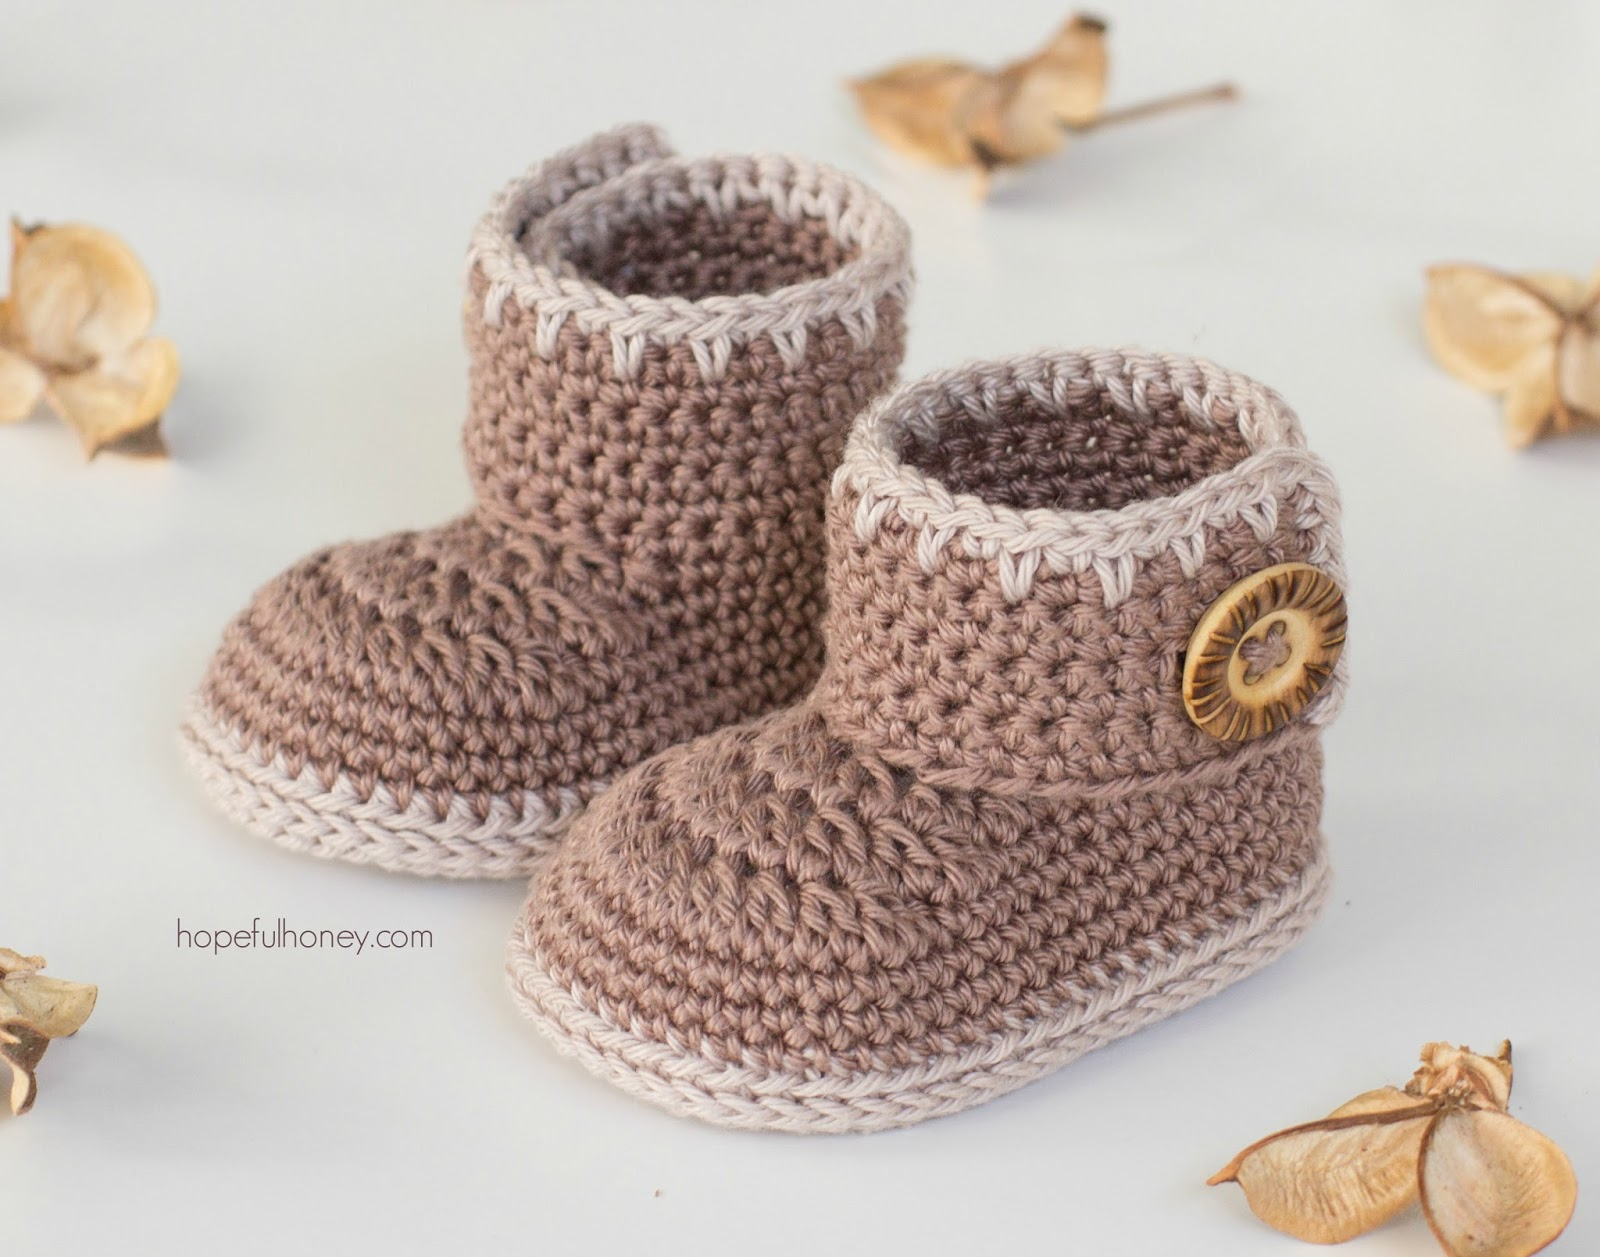 Hopeful Honey Craft, Crochet, Create: Cocoa Baby Ankle ...